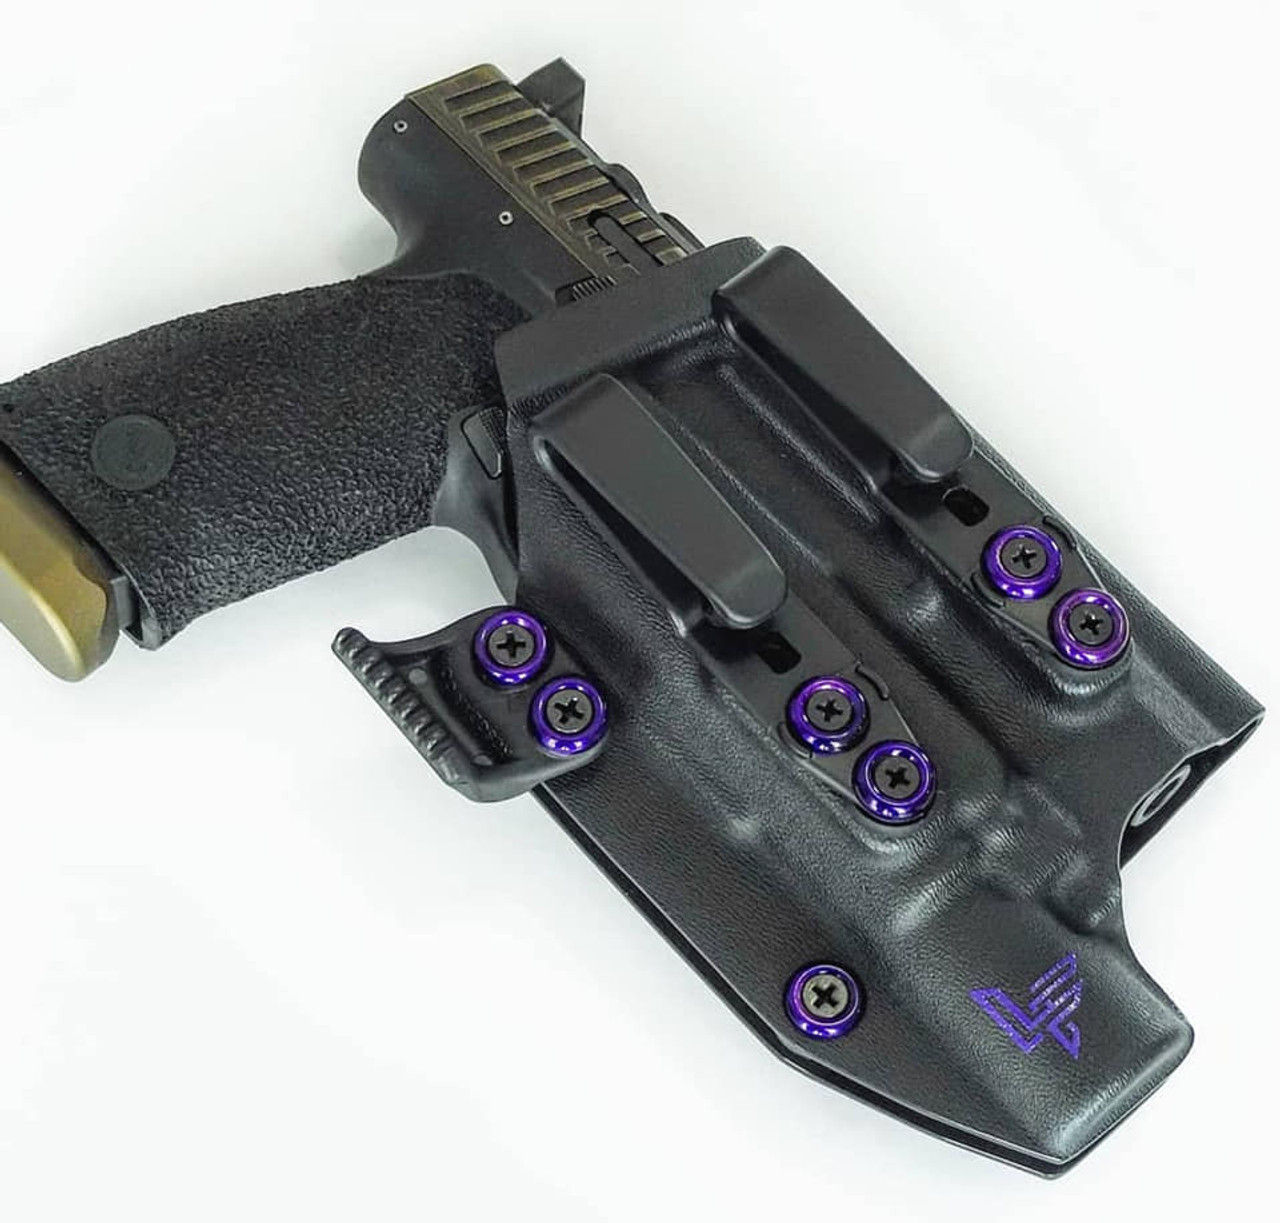 CZ P10c with Surefire X300 Holster